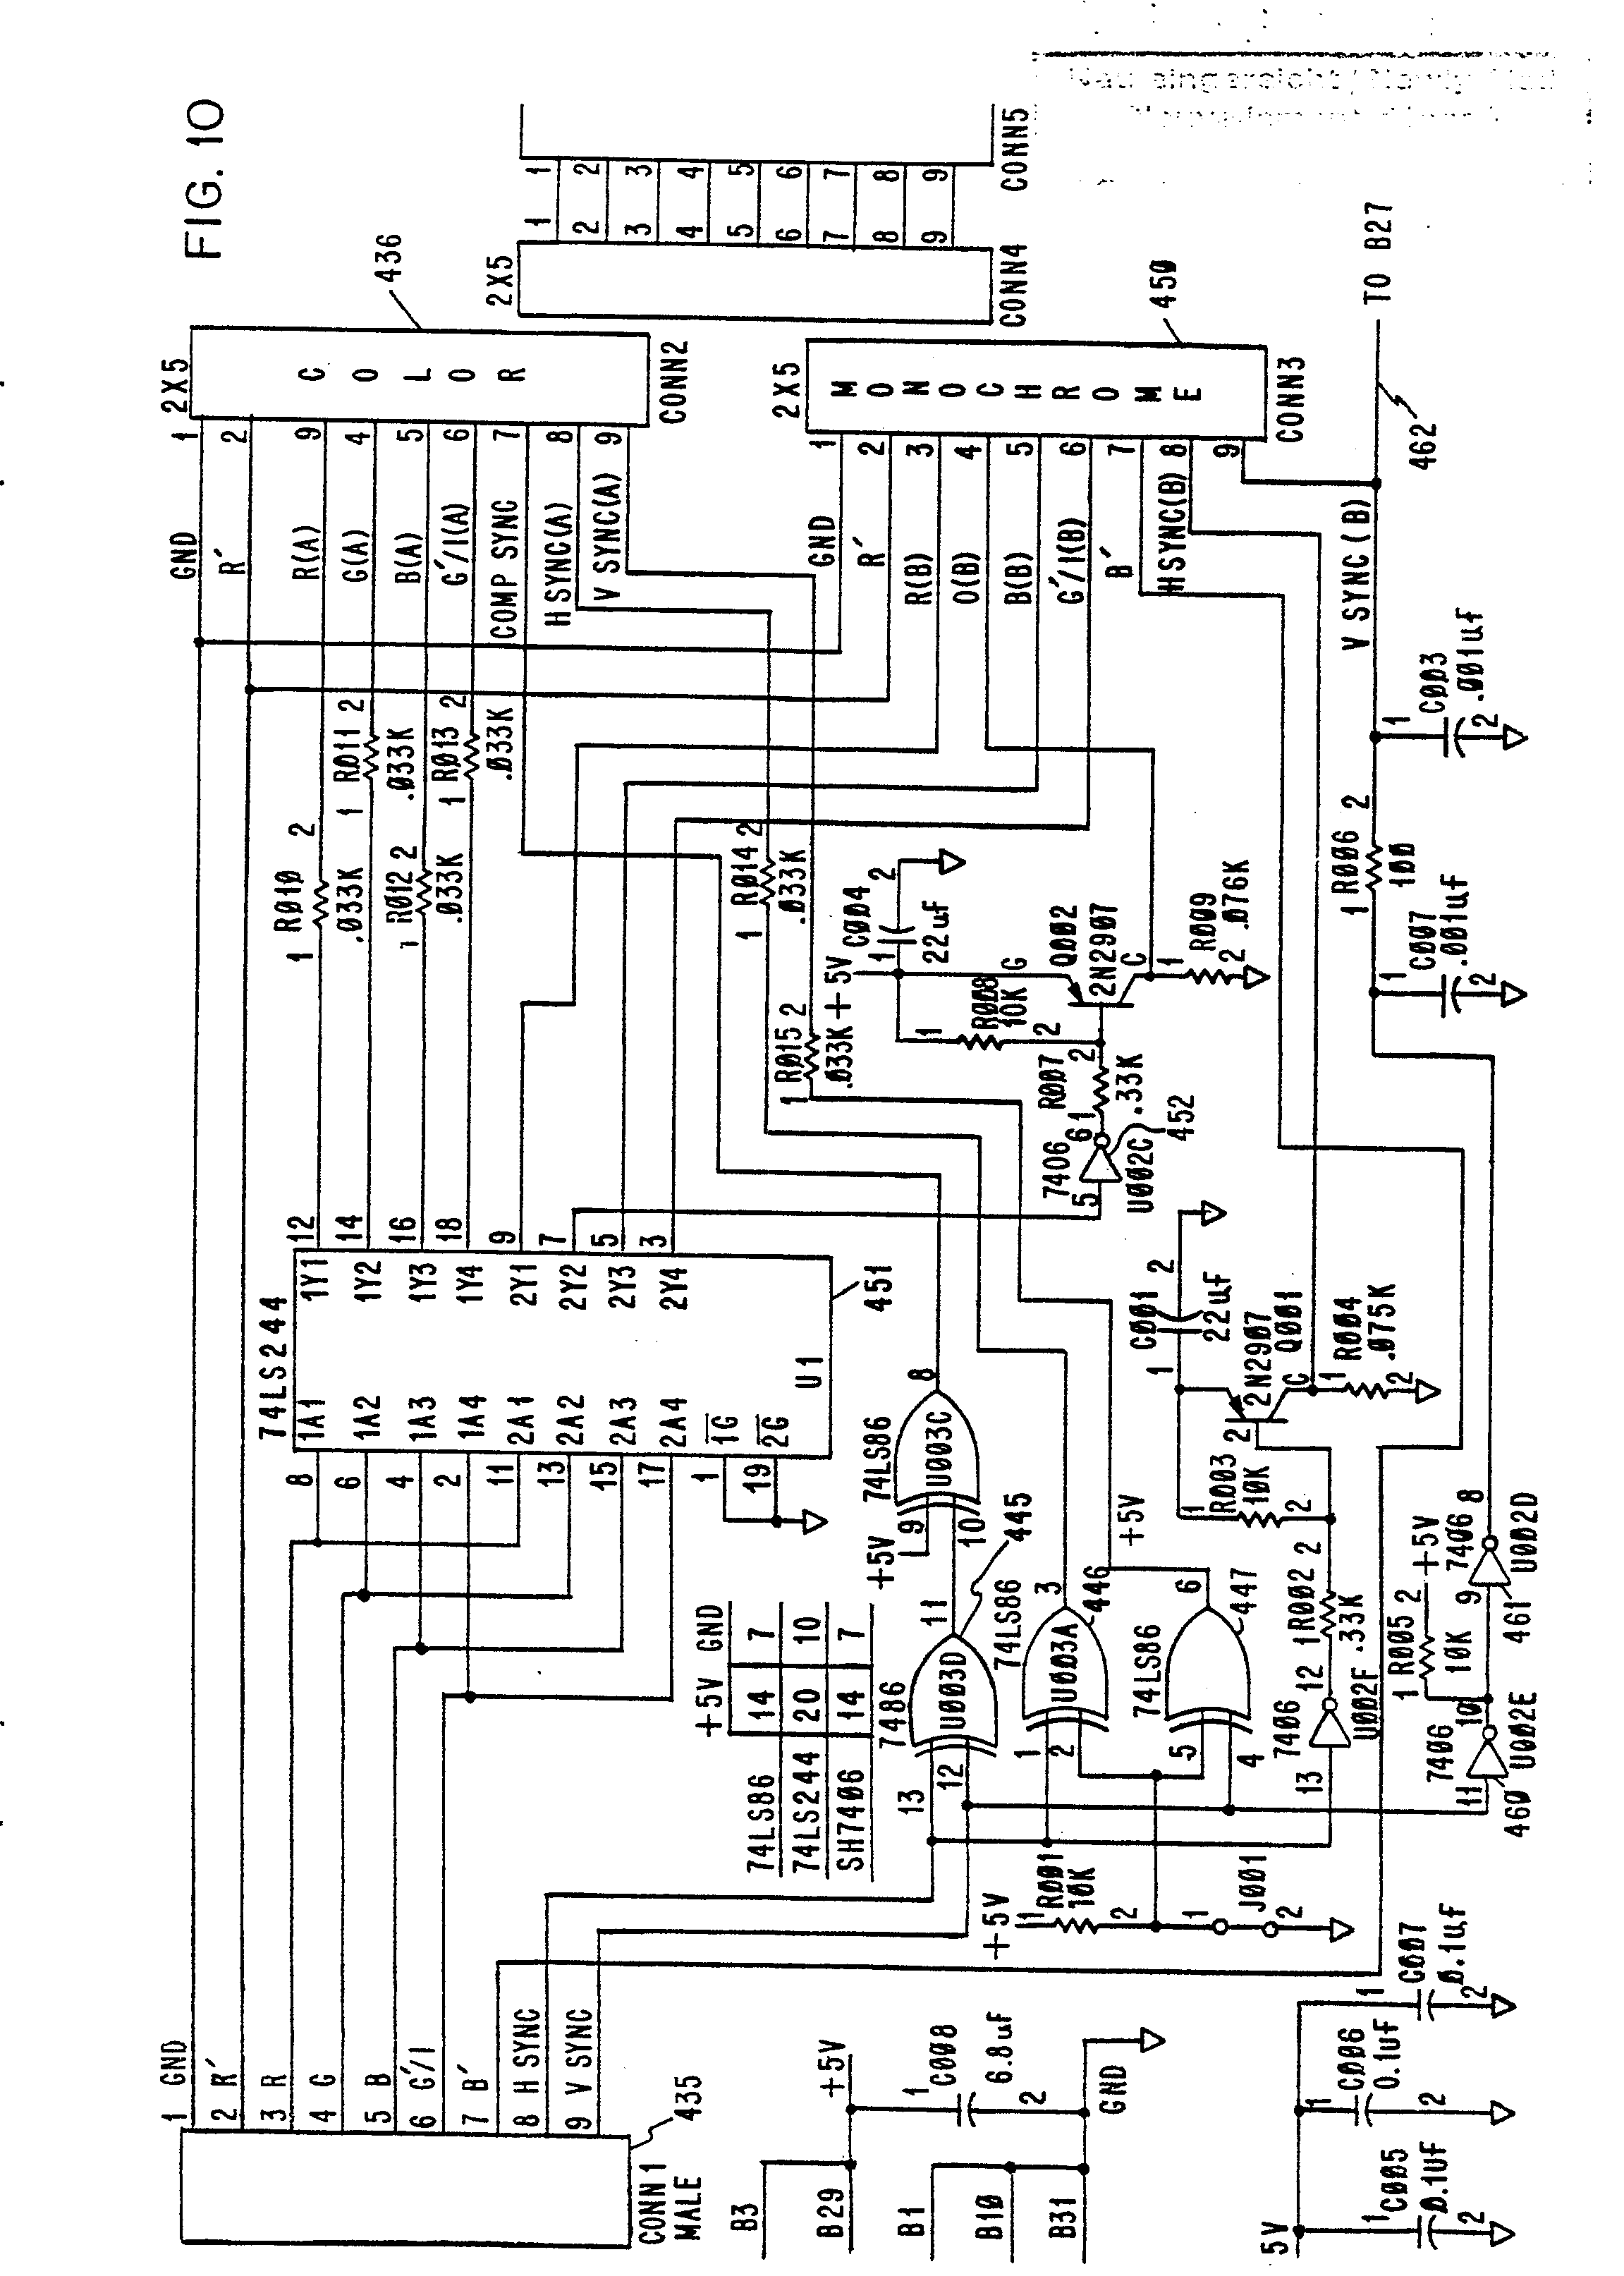 imgf0010 hobart 4346 wiring diagram old hobart grinder models \u2022 wiring hobart wiring diagram at bakdesigns.co